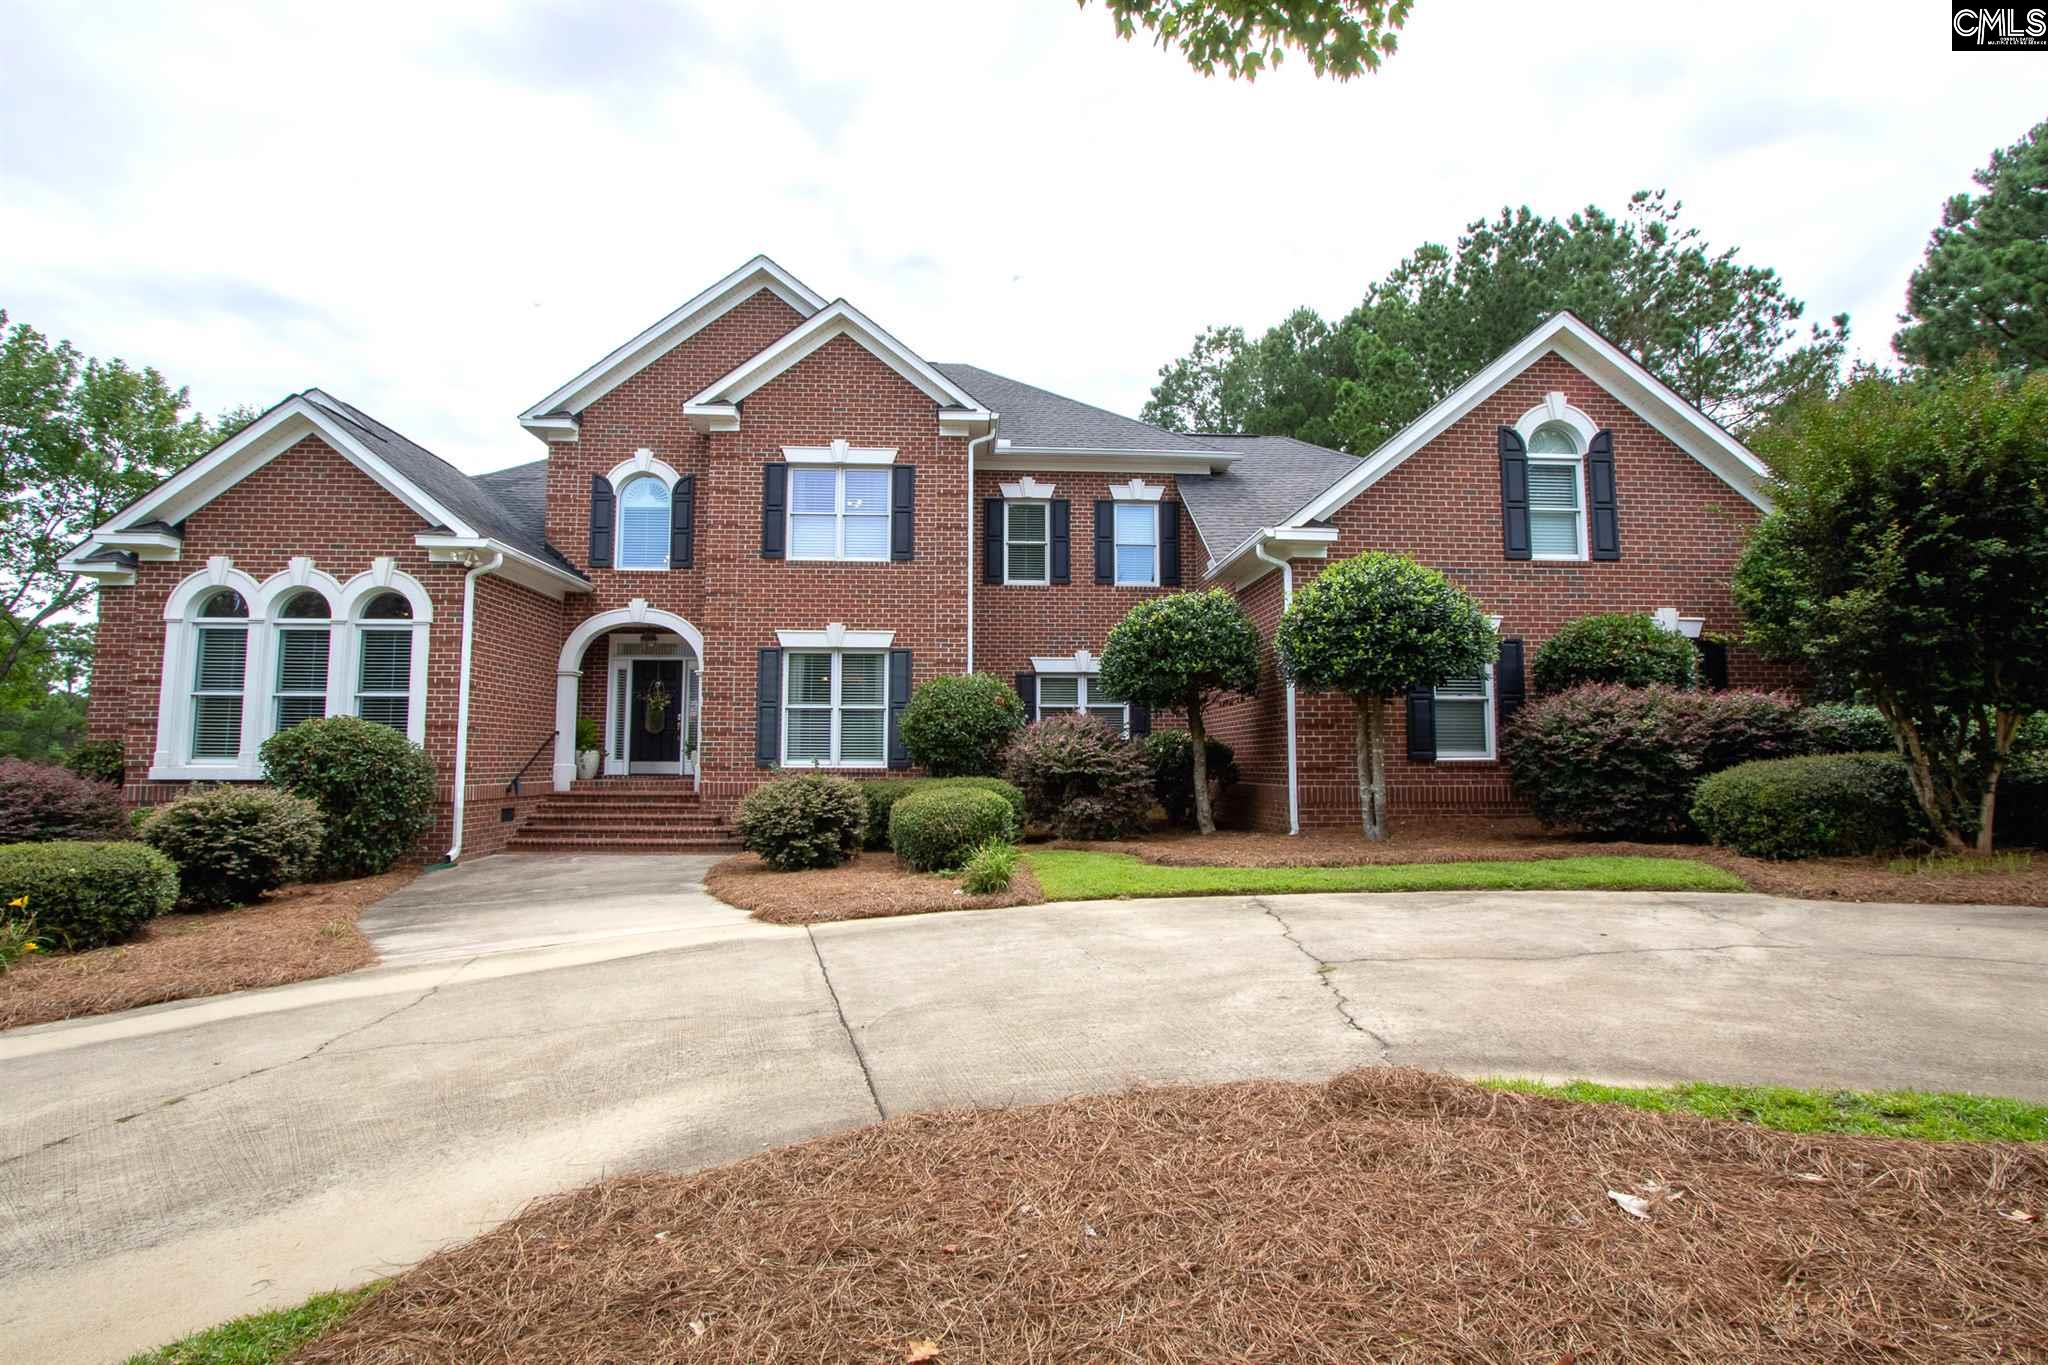 565 Charles Lexington, SC 29072